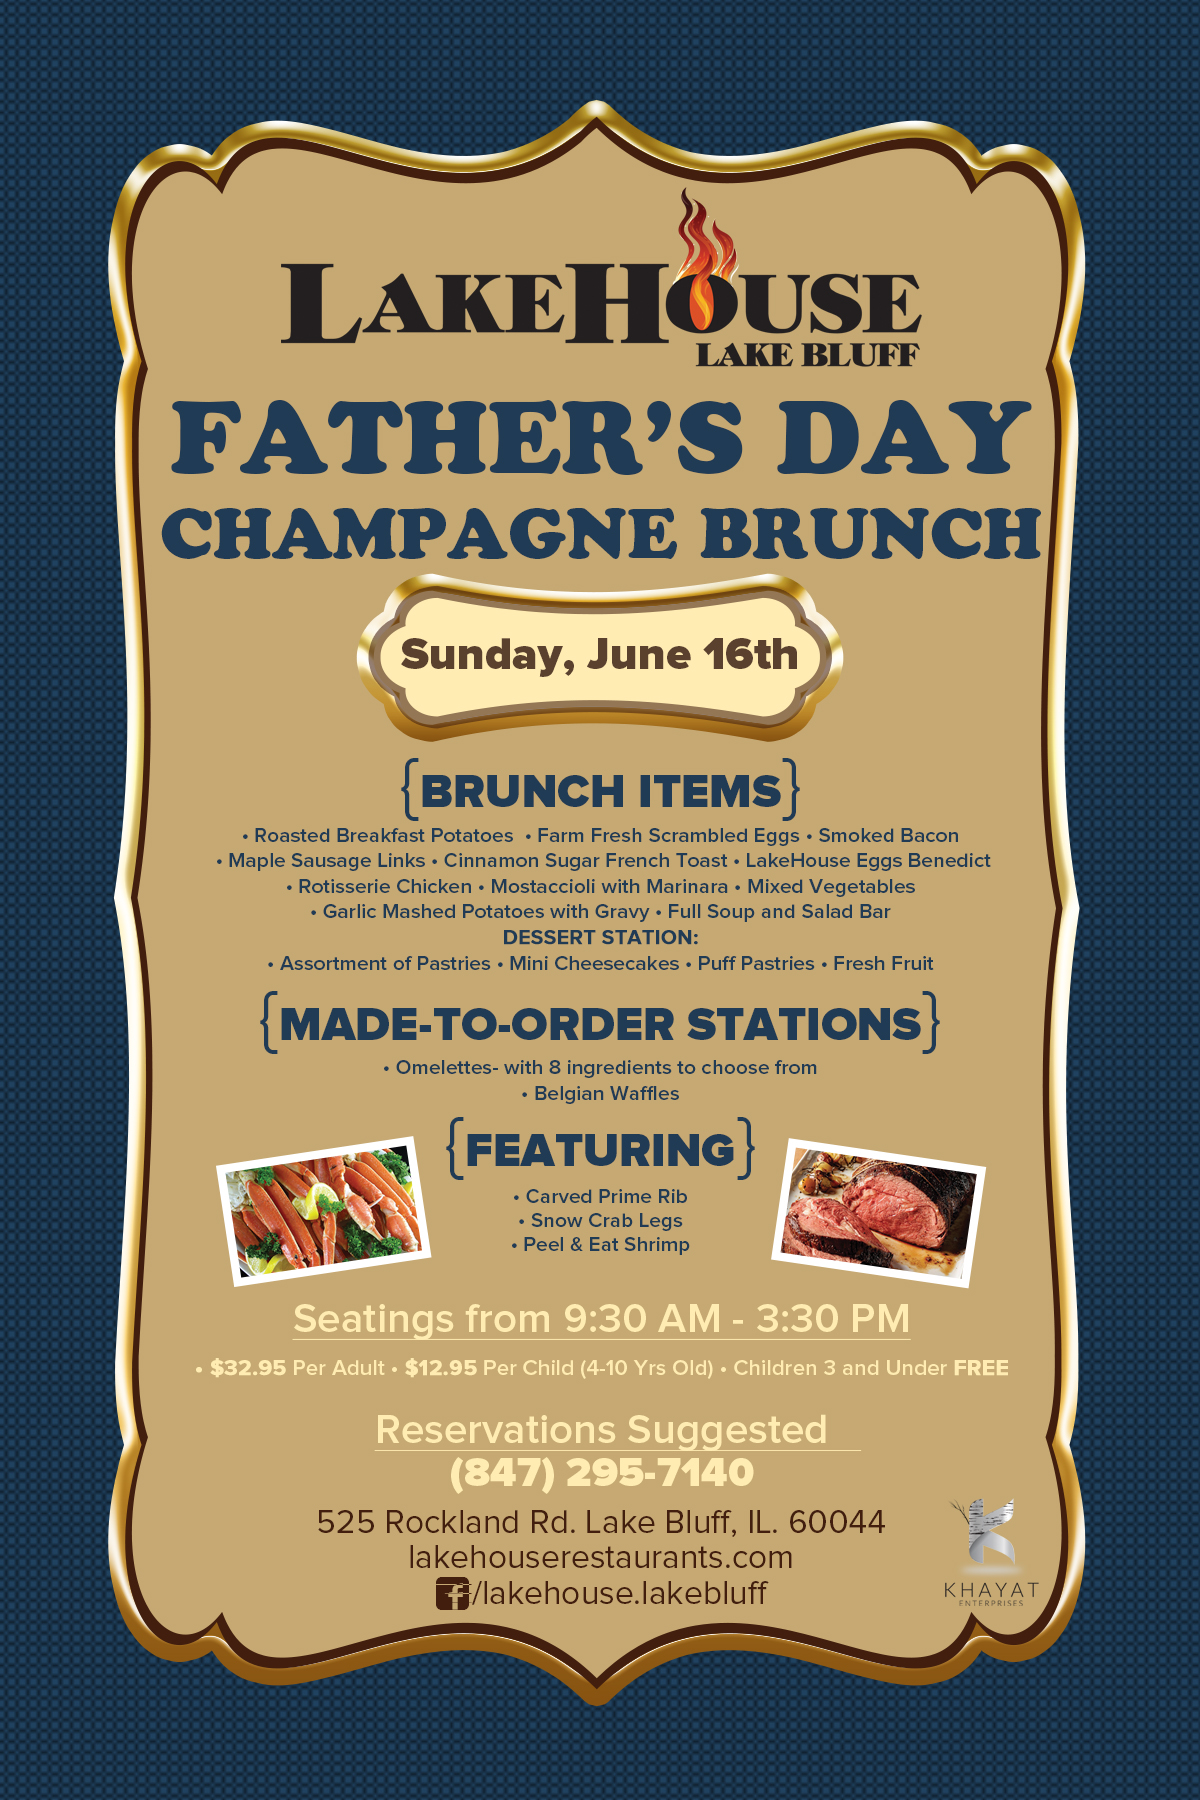 LakeHouse Lake Bluff Father's Day Champagne Brunch